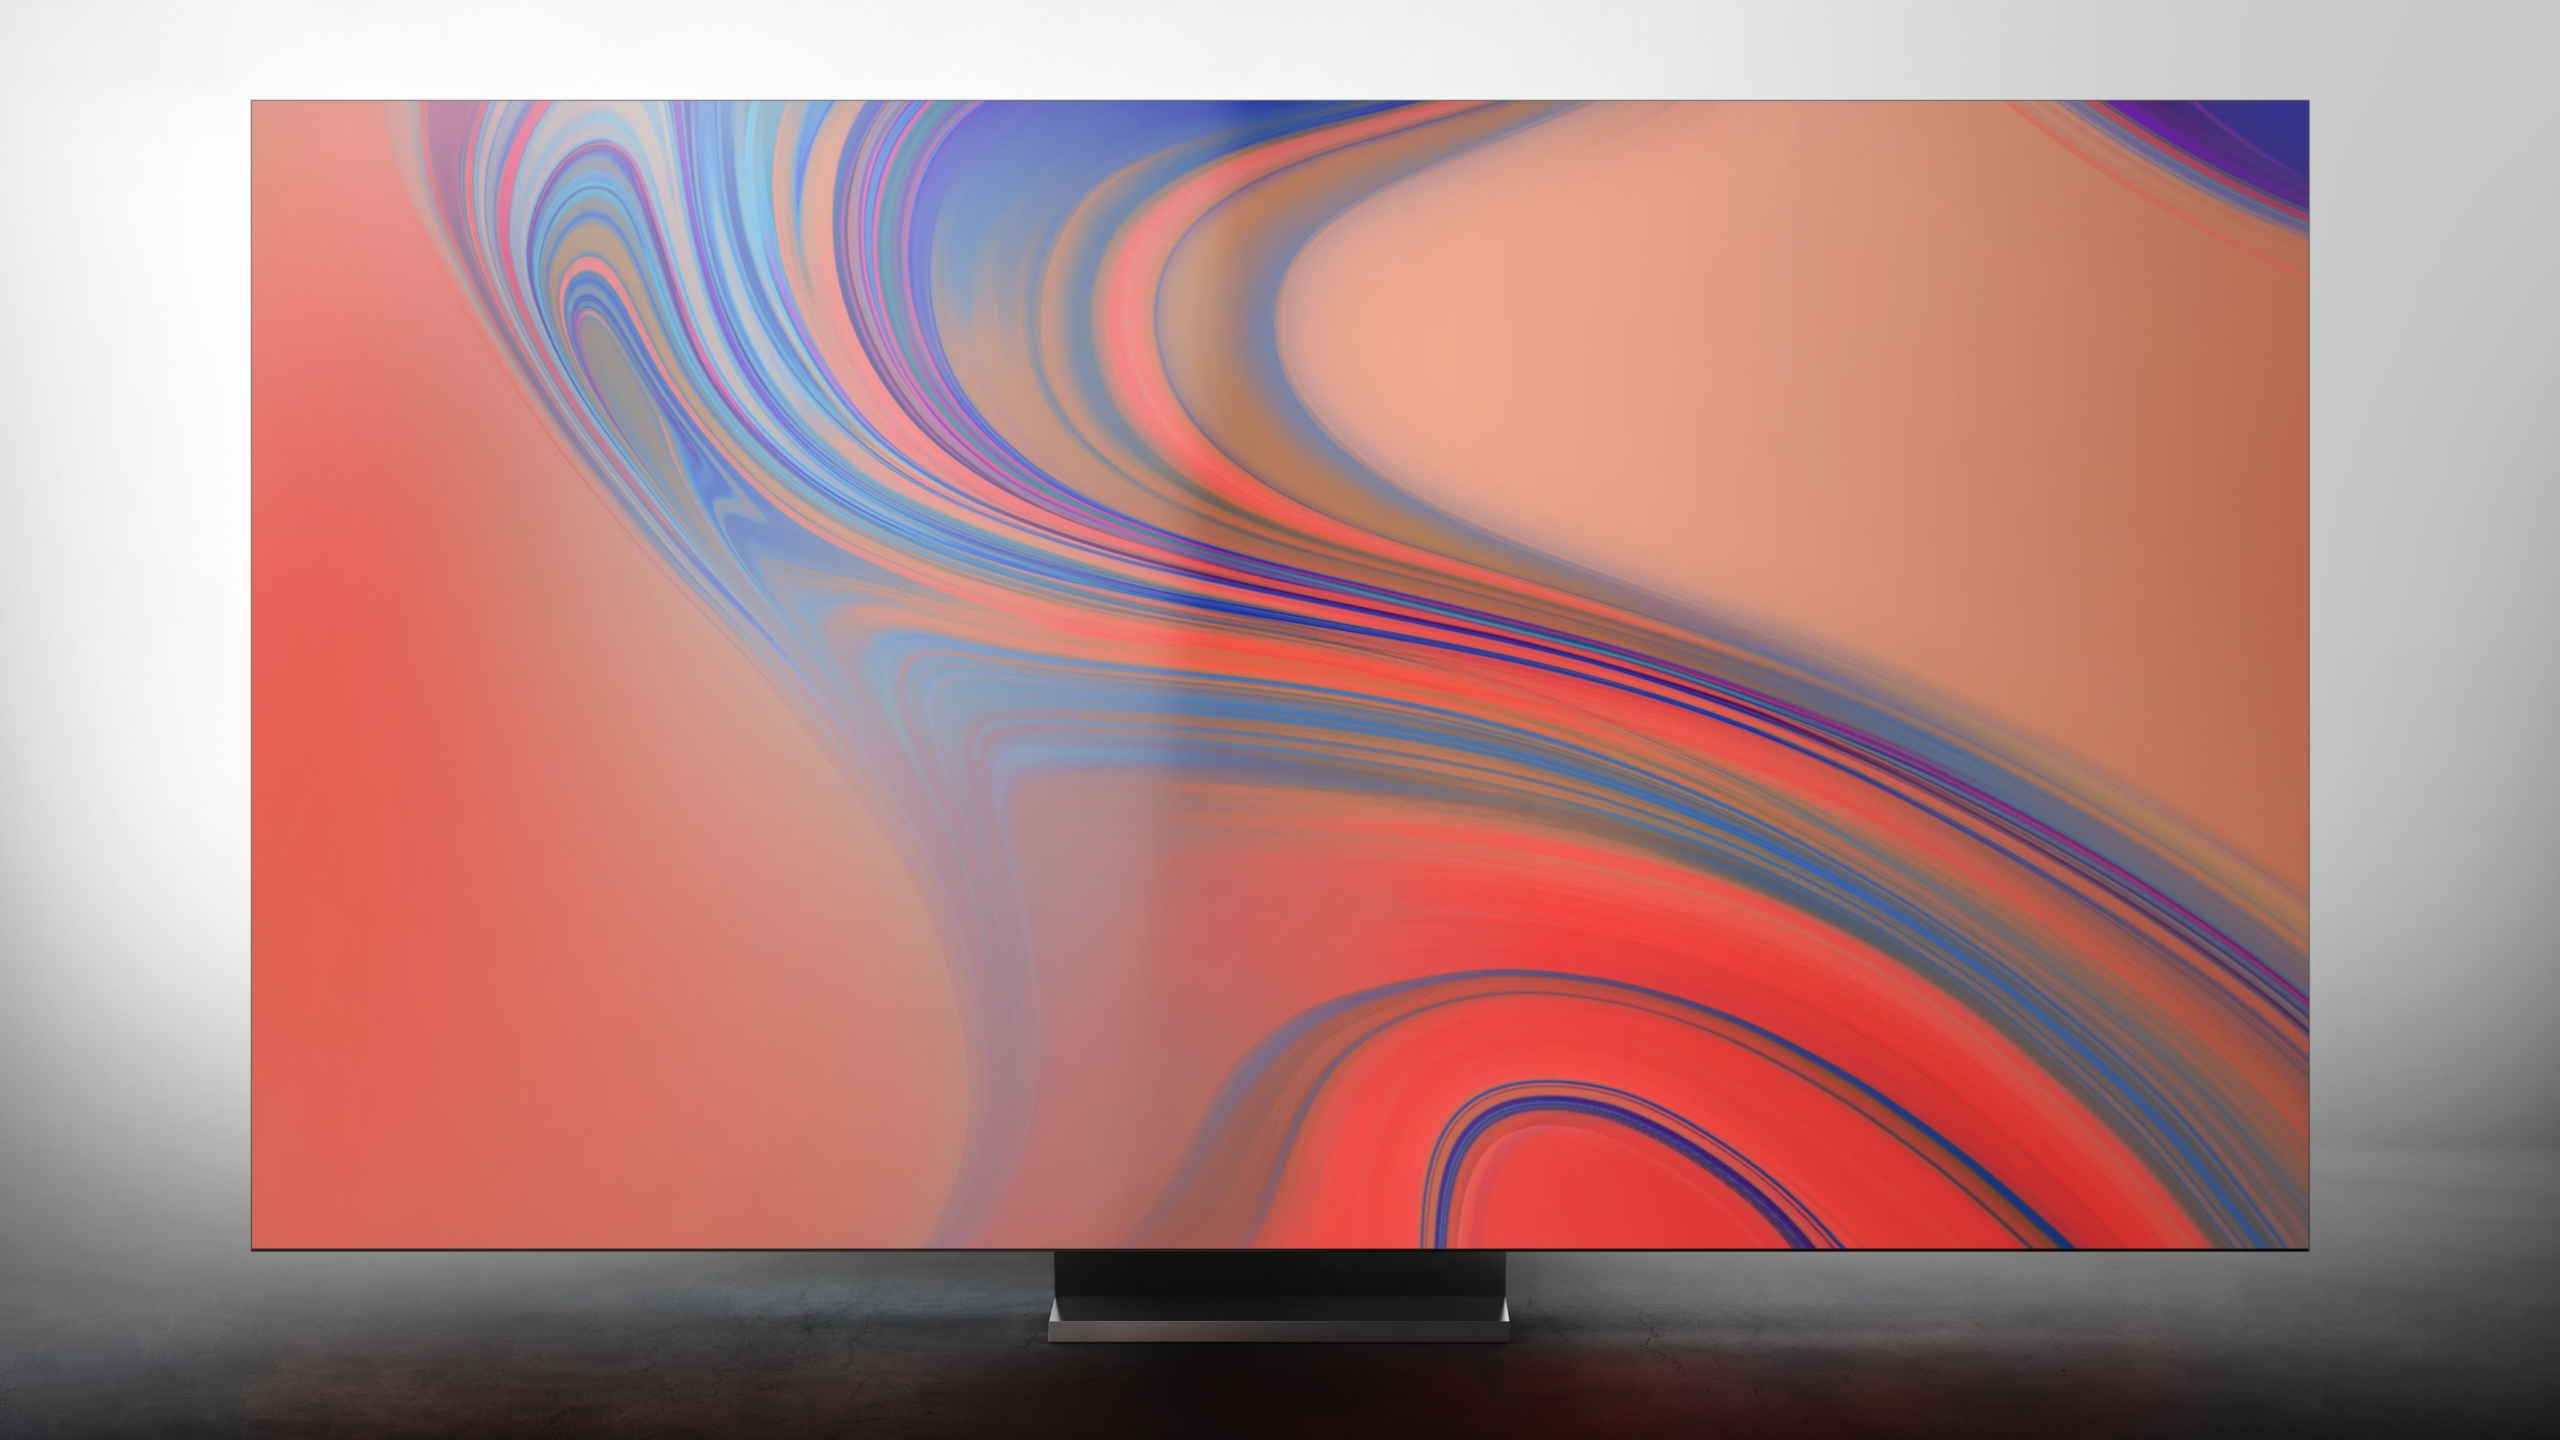 Samsung announces the first true 'zero bezel' TV with several groundbreaking features 4